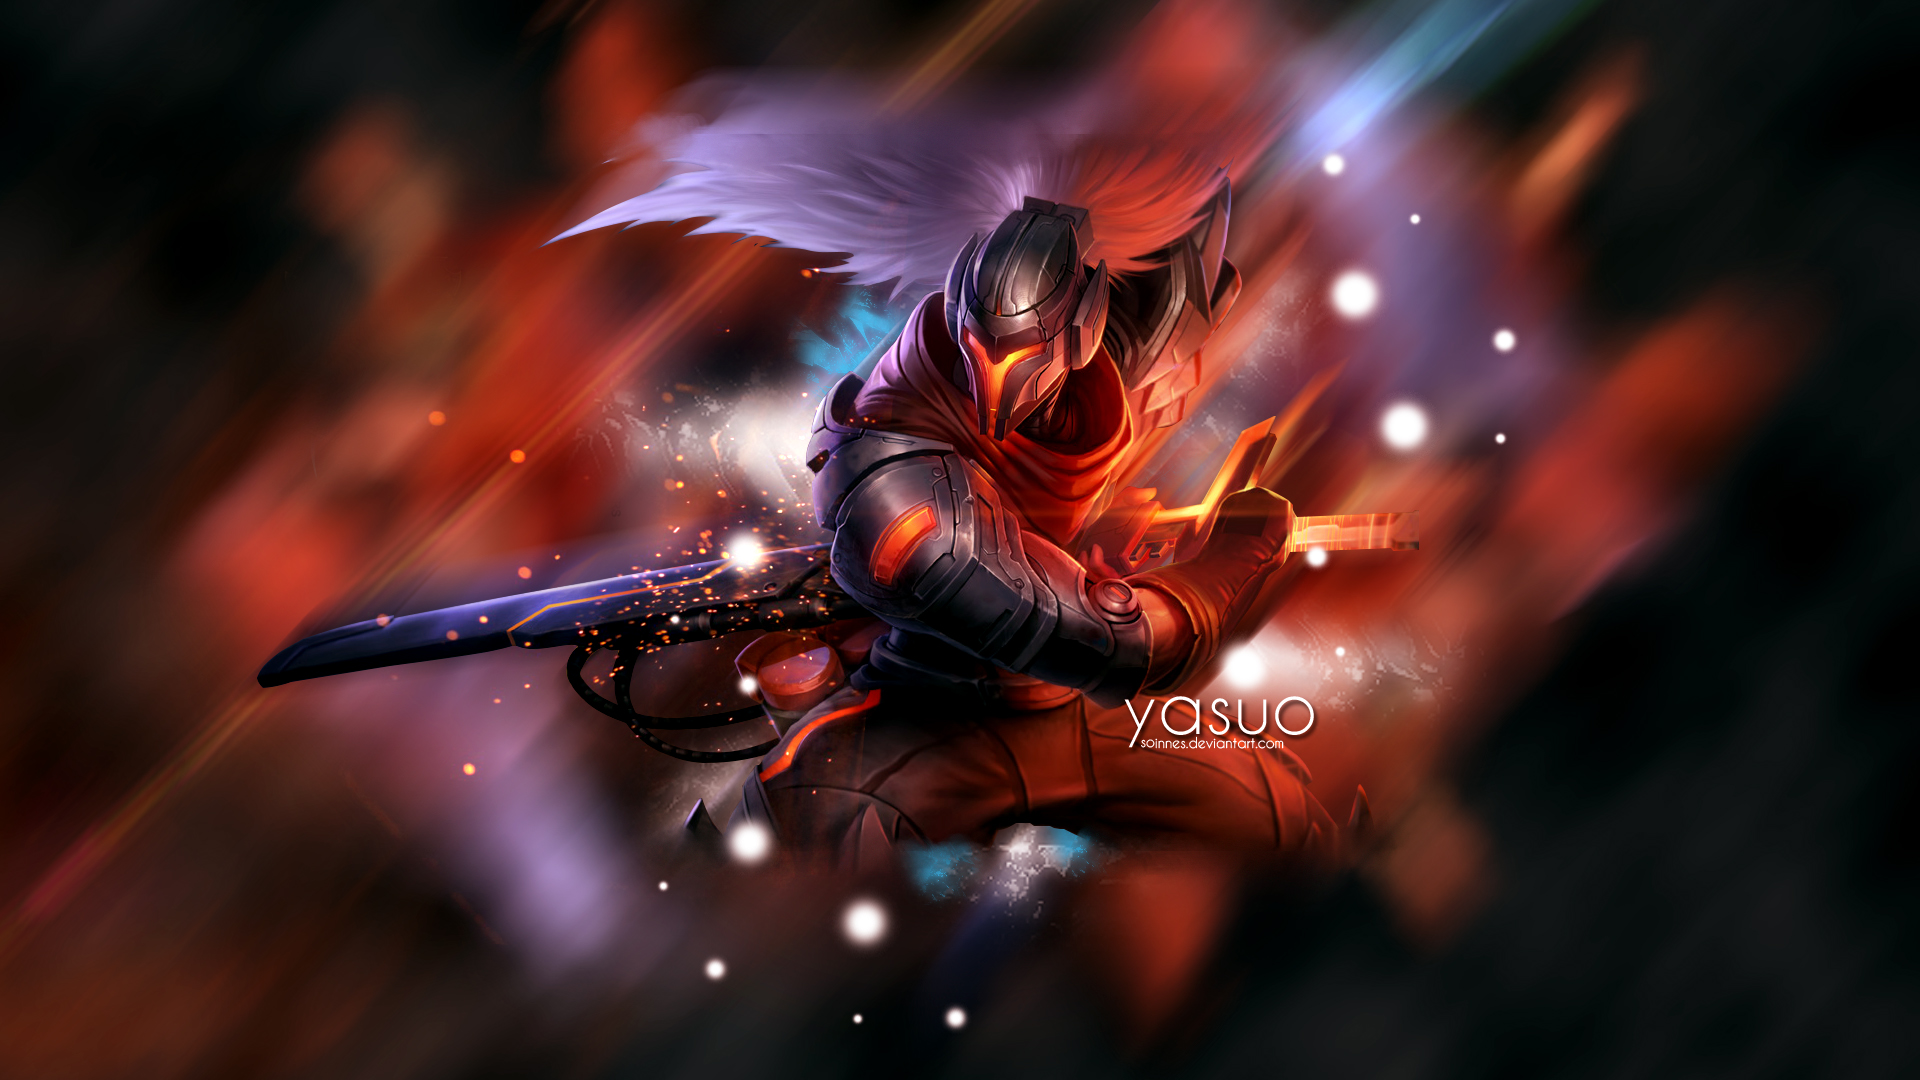 League Of Legends Yasuo Wallpaper: Yasuo By Soinnes On DeviantArt